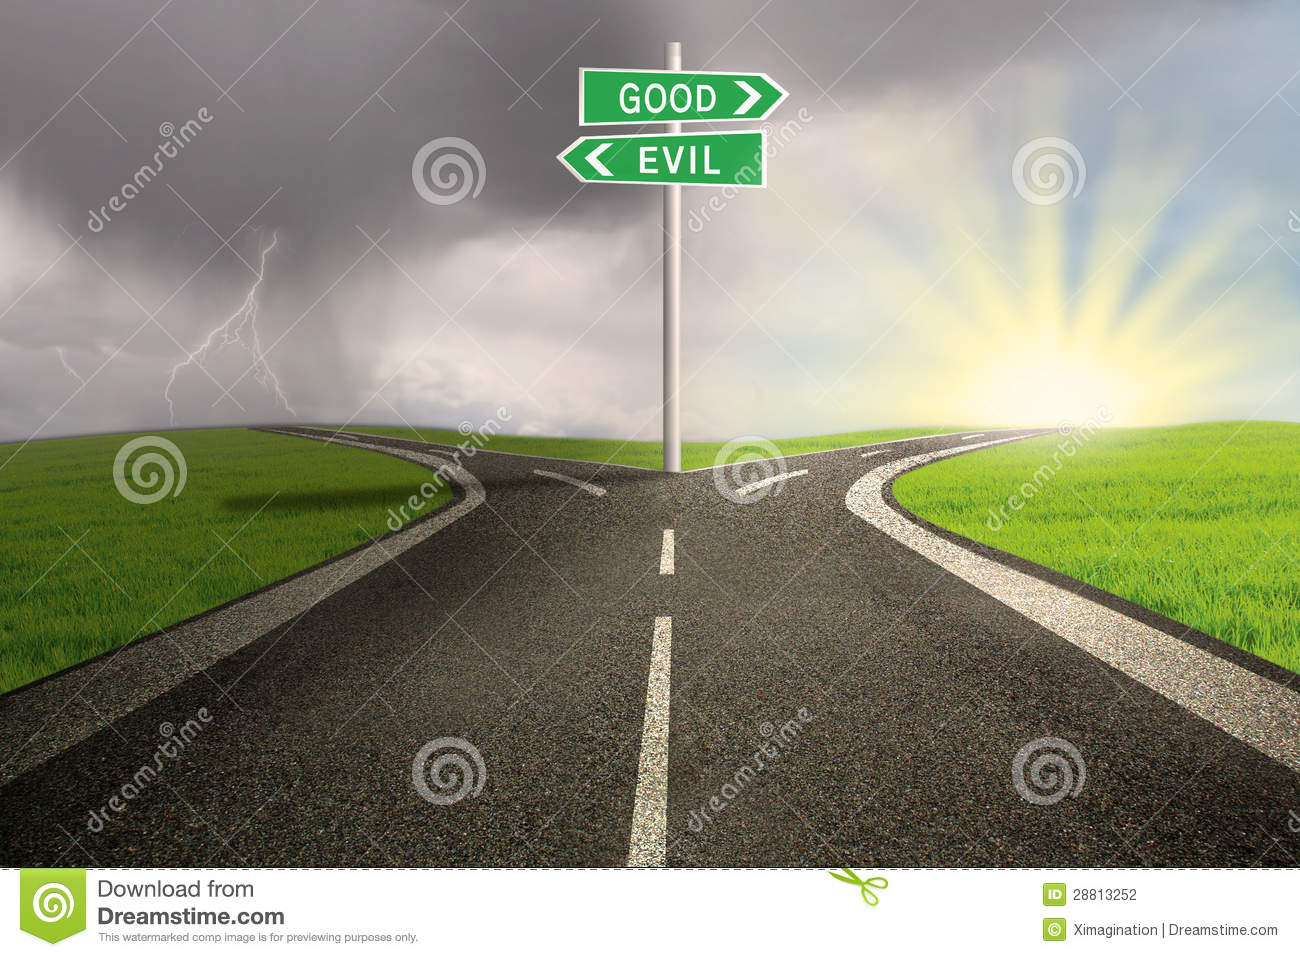 the road good vs evil Analysis of good vs evil in literature english literature essay  in the end, hamlet takes the road of evil and seeks revenge, killing several people this quote.